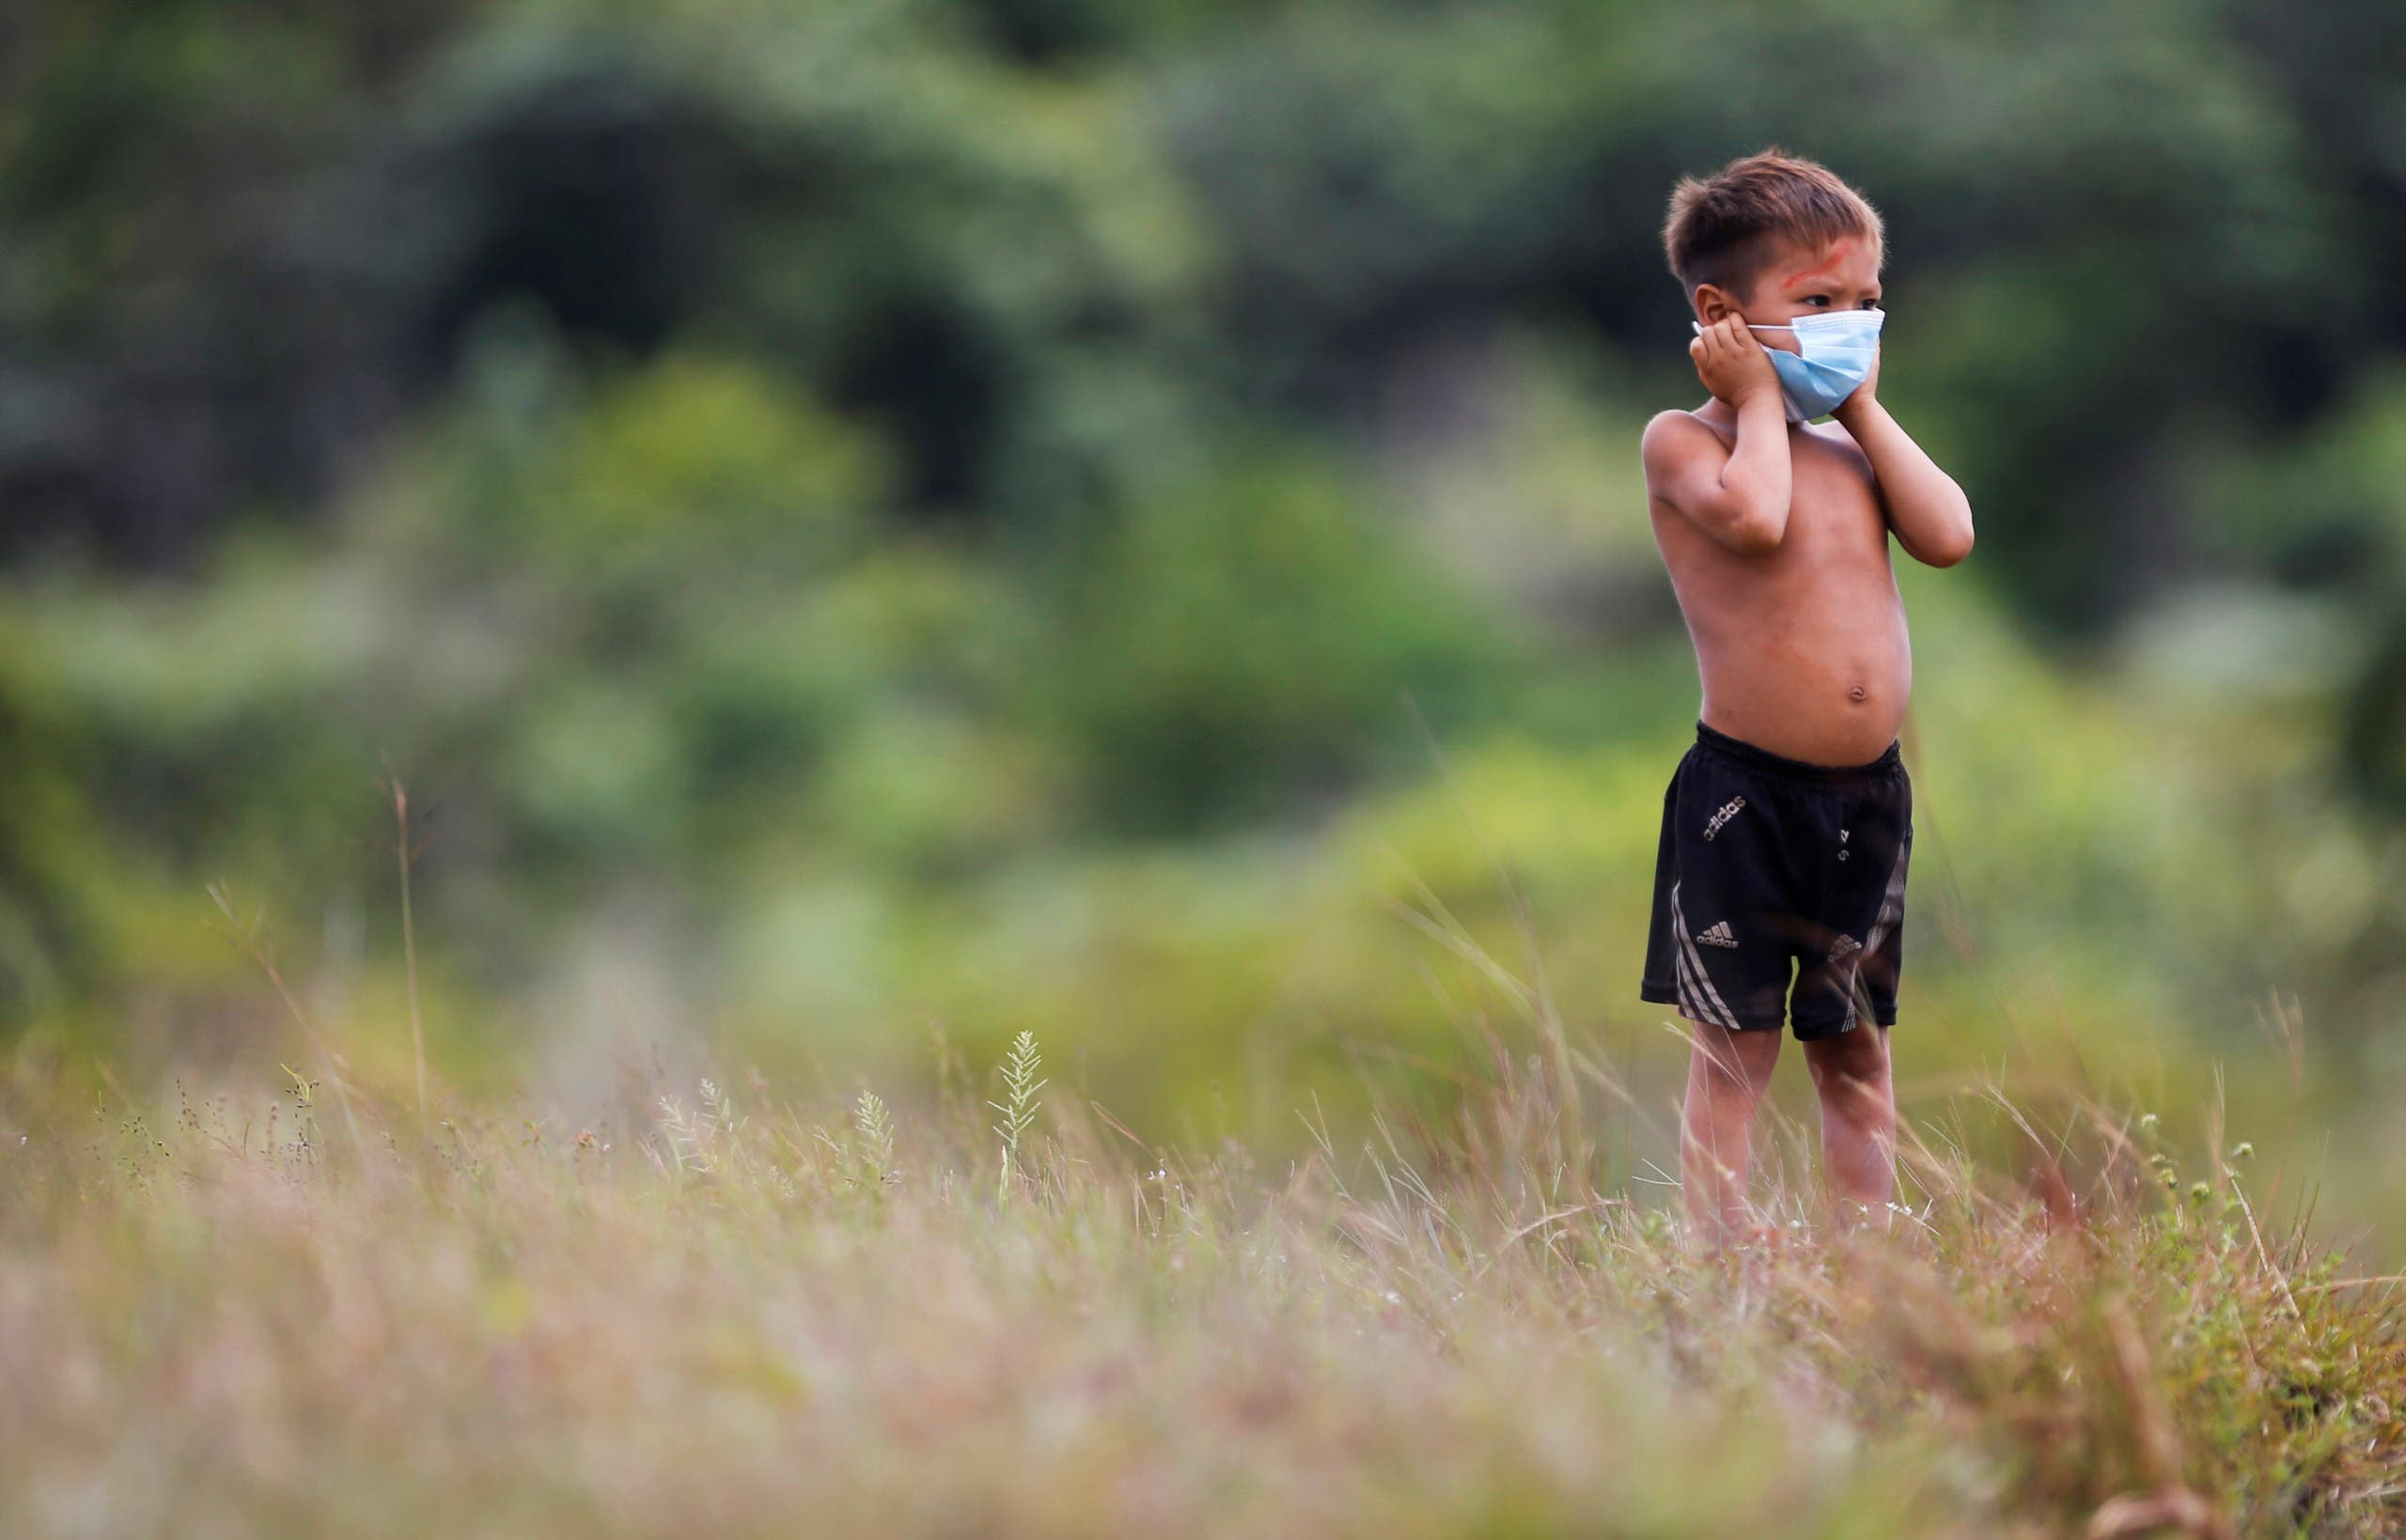 An Indigenous child from Yanomami ethnic group is seen, amid the spread of the coronavirus disease (COVID-19), at the 4th Surucucu Special Frontier Platoon of the Brazilian army in the municipality of Alto Alegre, state of Roraima, Brazil July 1, 2020. (Reuters)